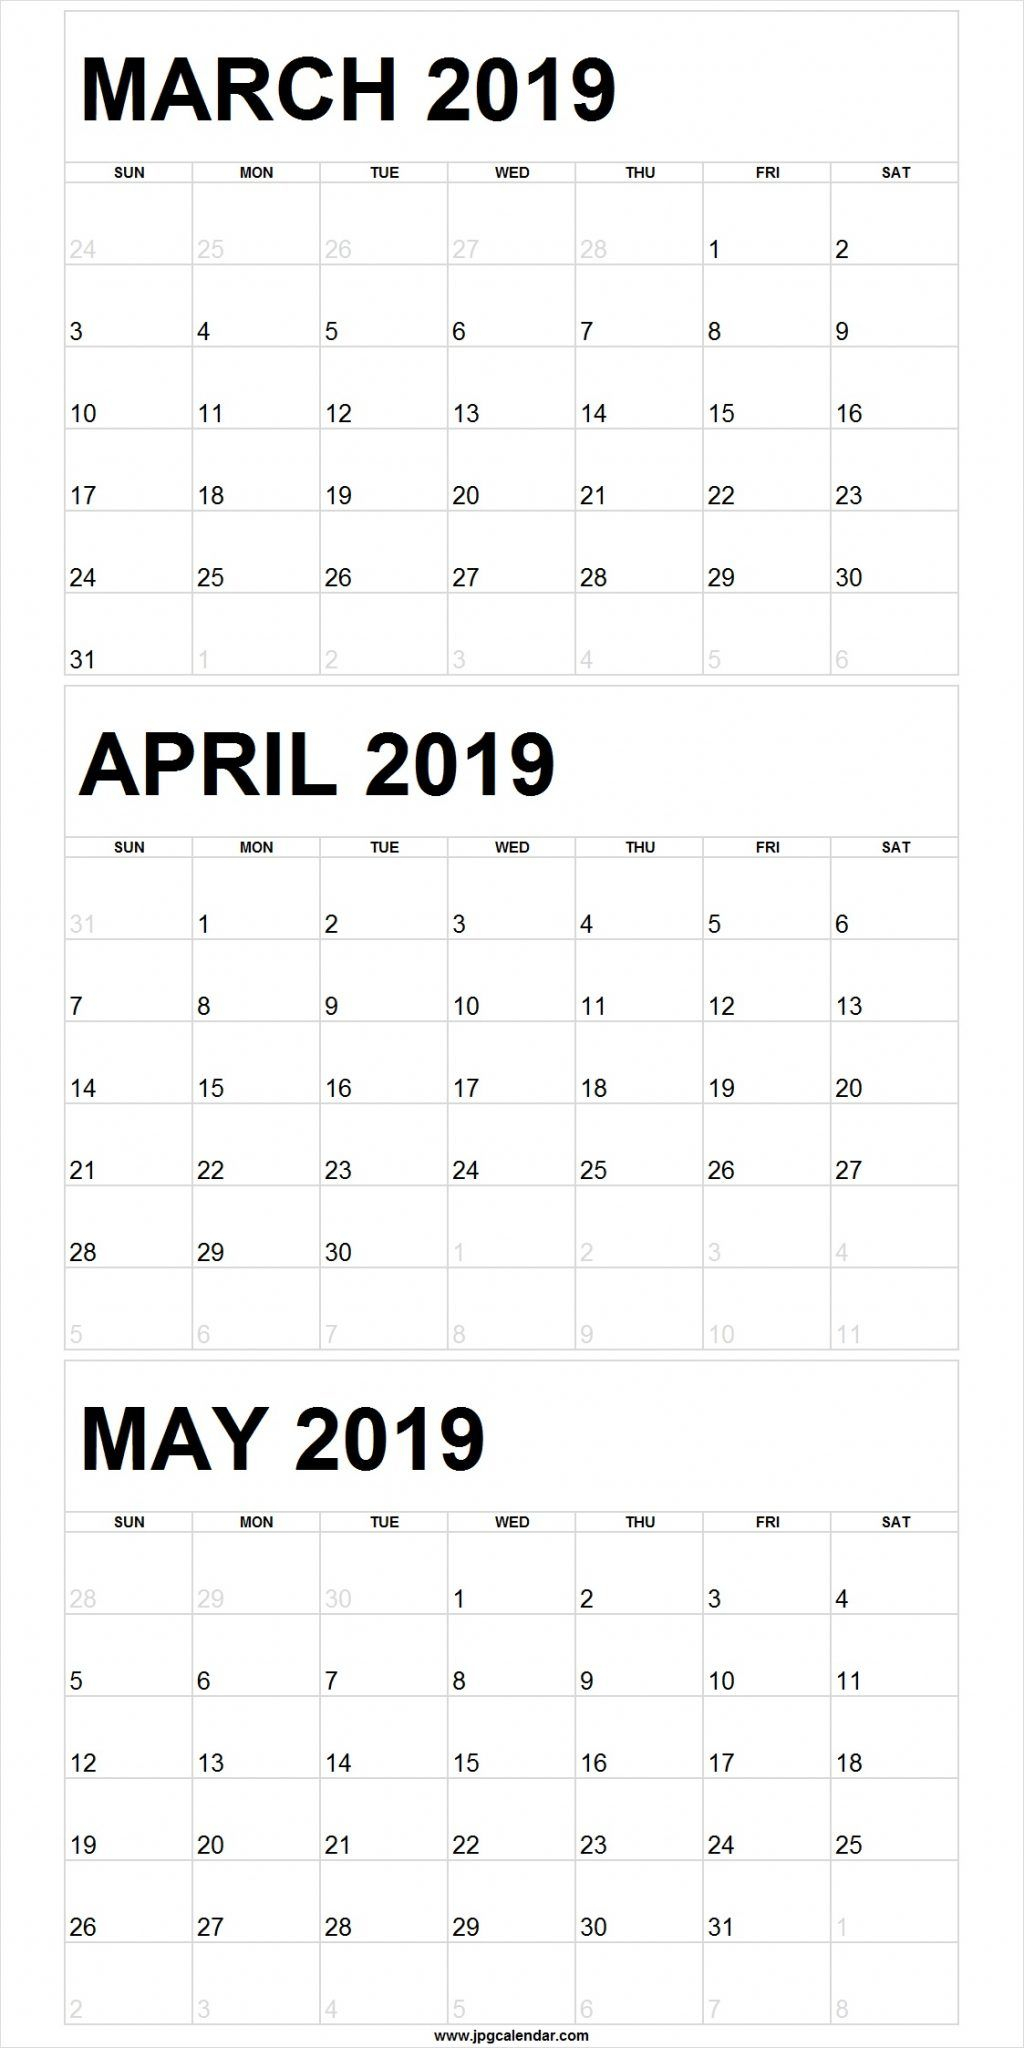 Blank March To May 2019 Calendar Printable | 250+ Free Monthly with regard to 3 Month Calendar Printable Template